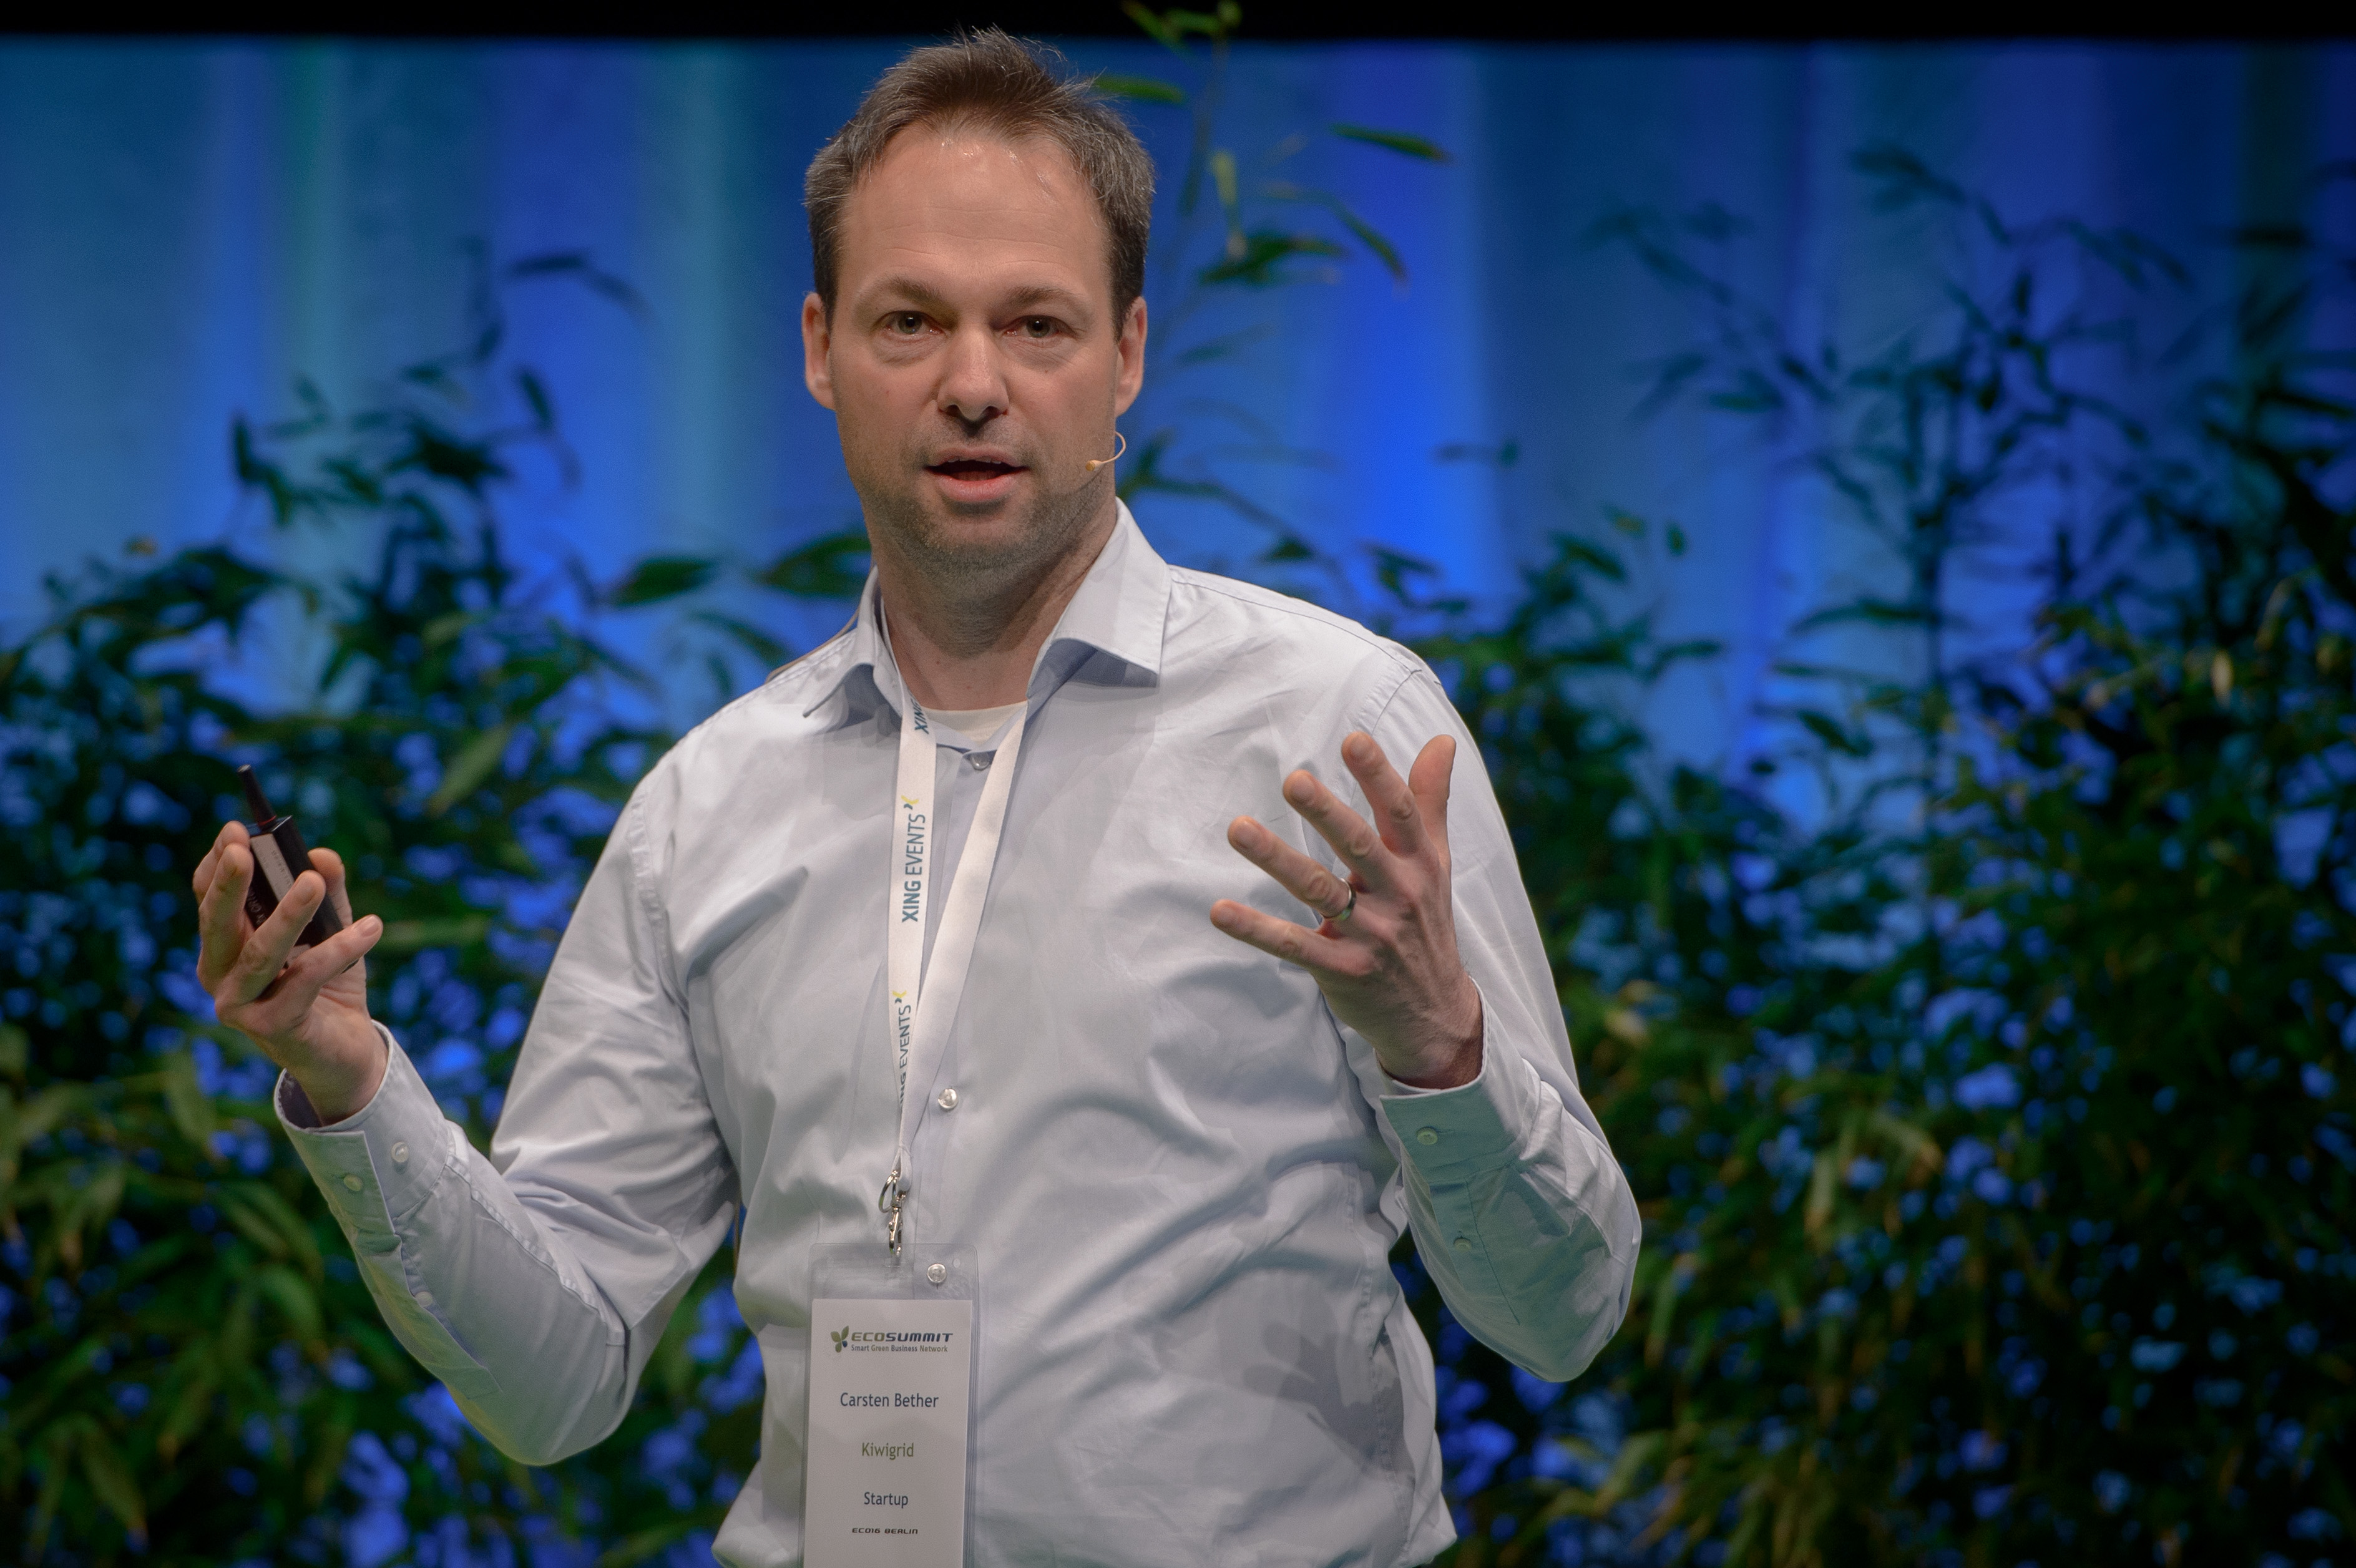 Cleantech trends Kiwigrid- ecosummit berlin 2016